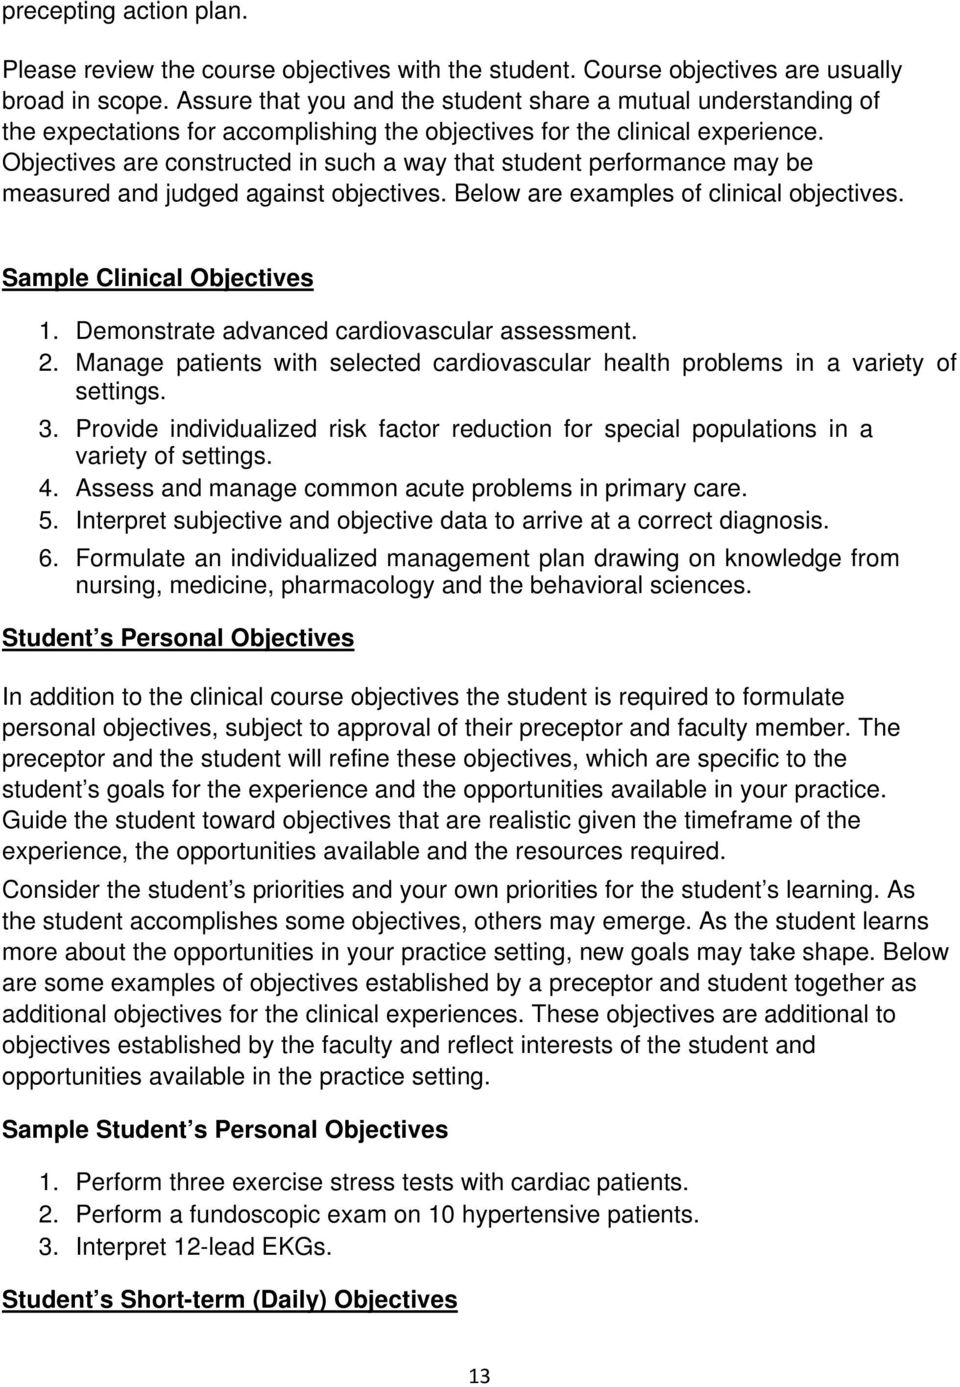 Objectives are constructed in such a way that student performance may be measured and judged against objectives. Below are examples of clinical objectives. Sample Clinical Objectives 1.